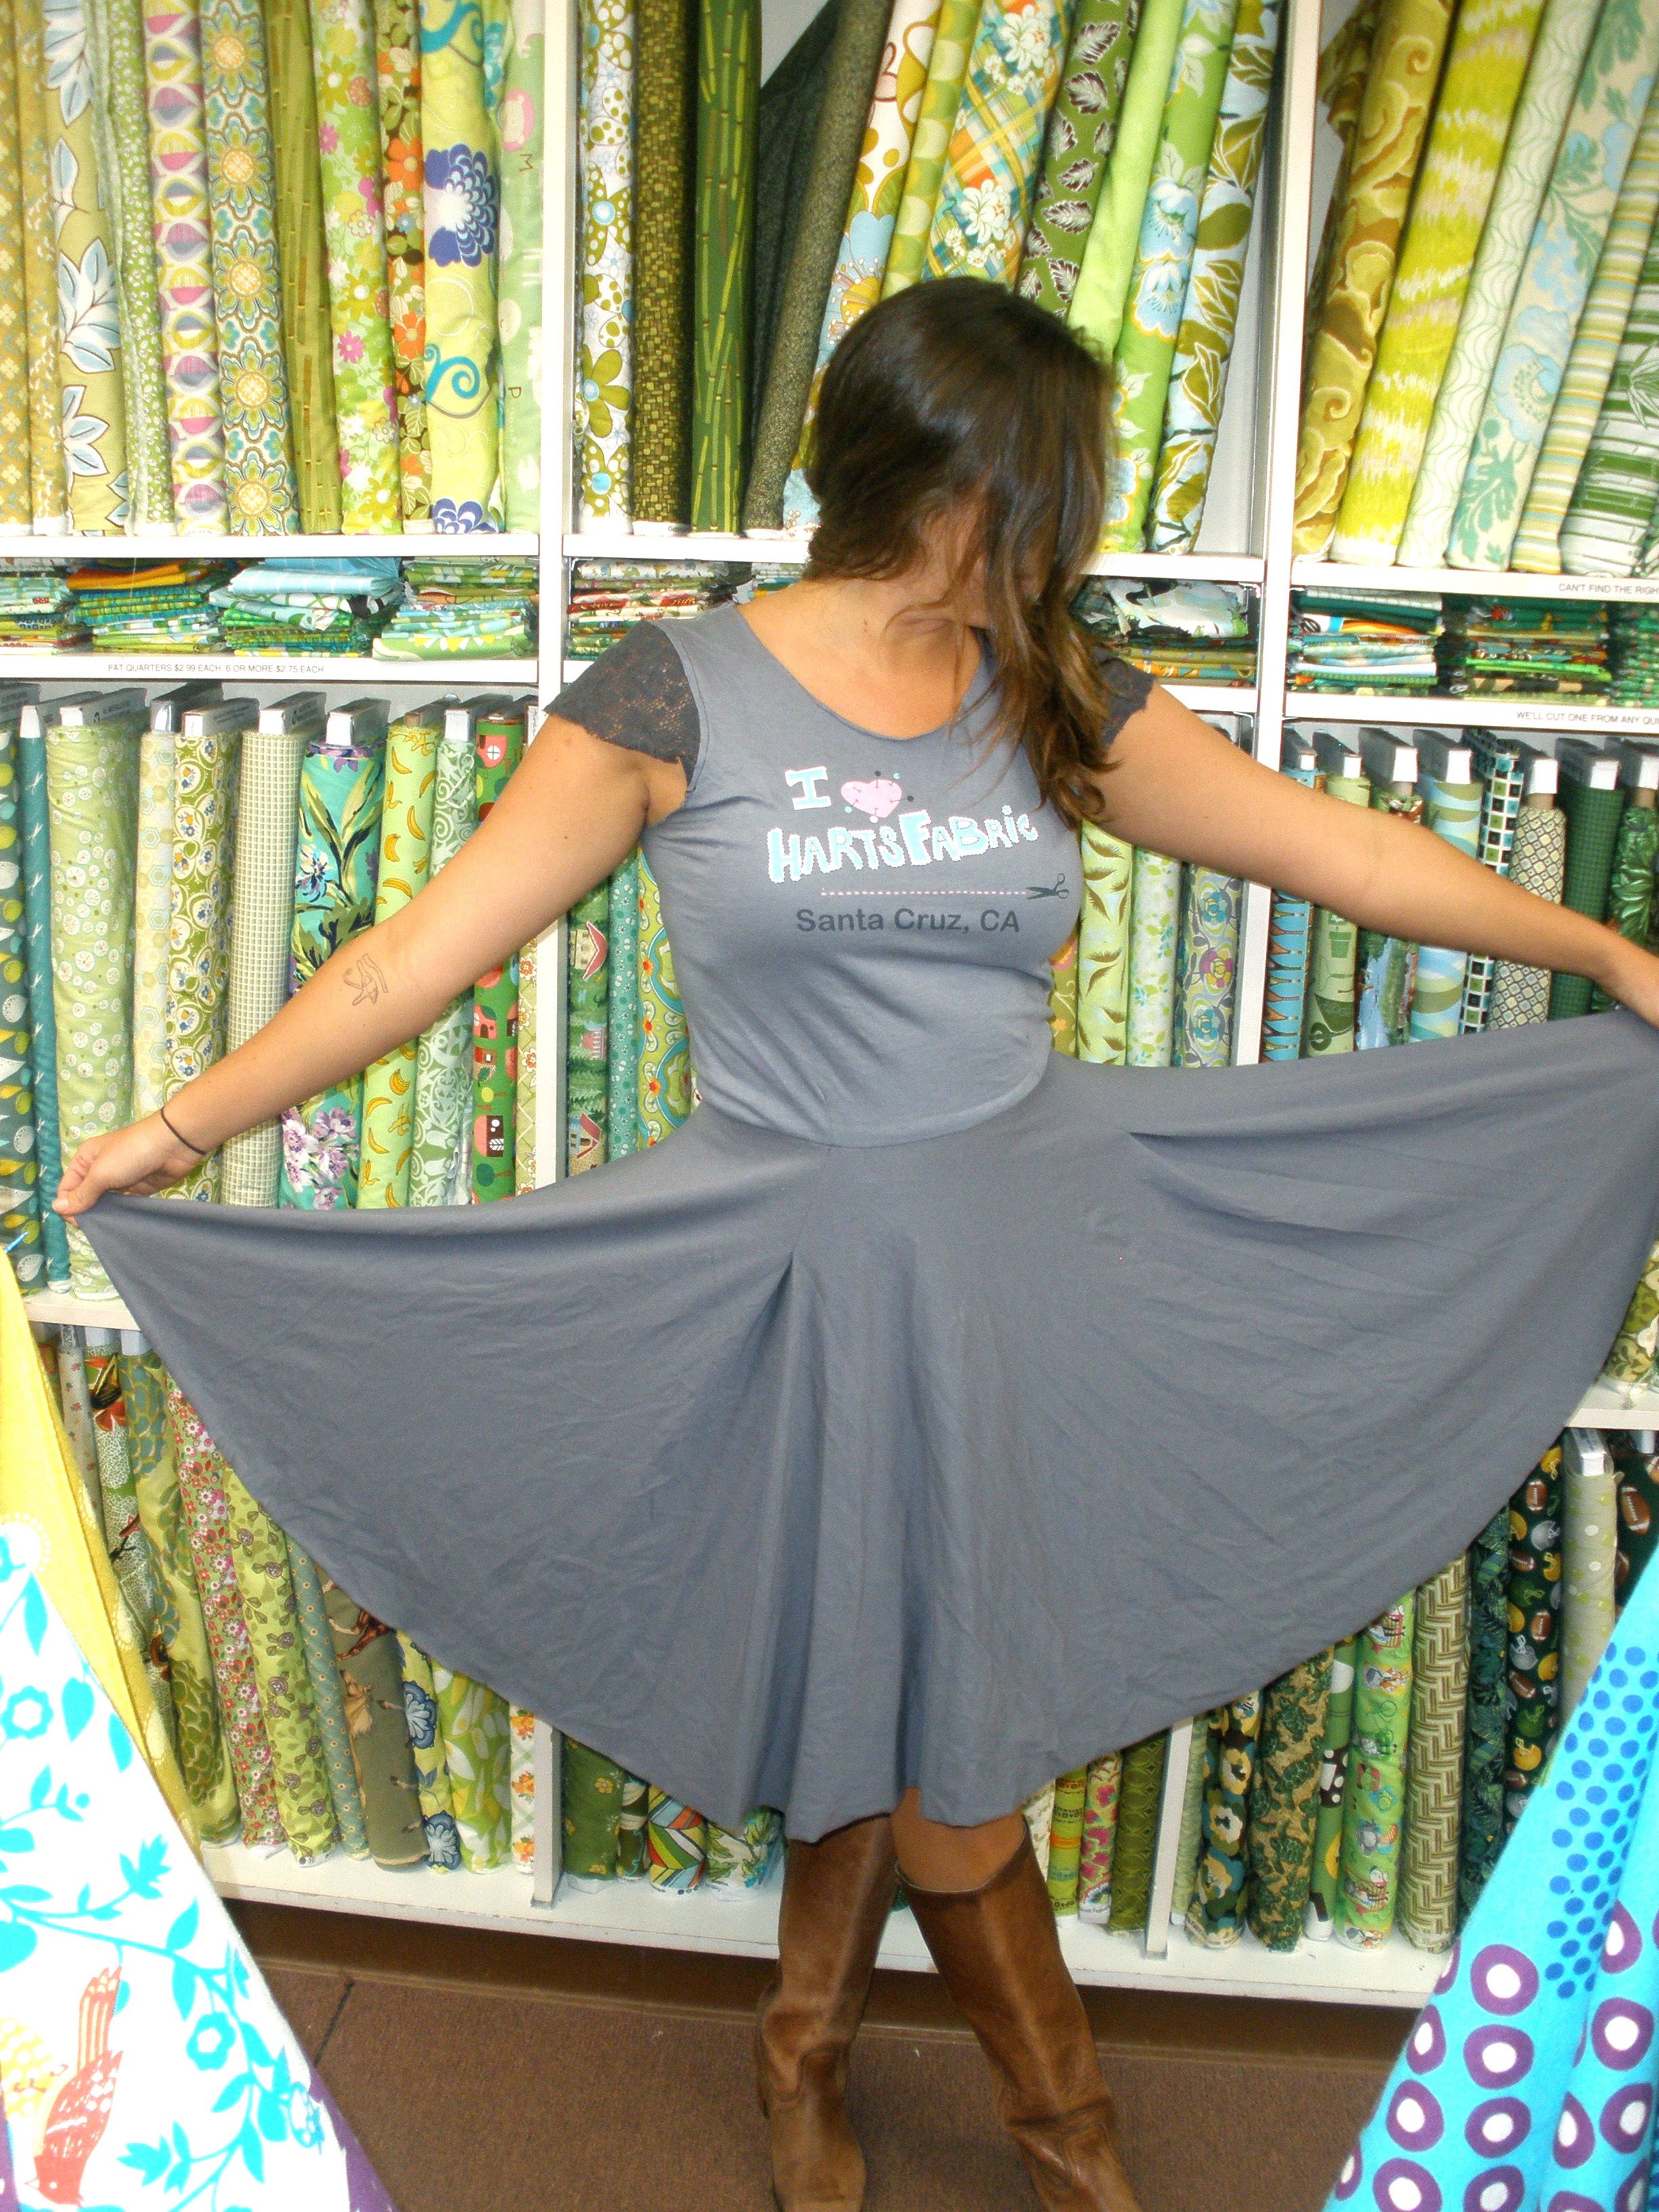 Knit jersey circle skirt dress sewing projects burdastyle bankloansurffo Image collections